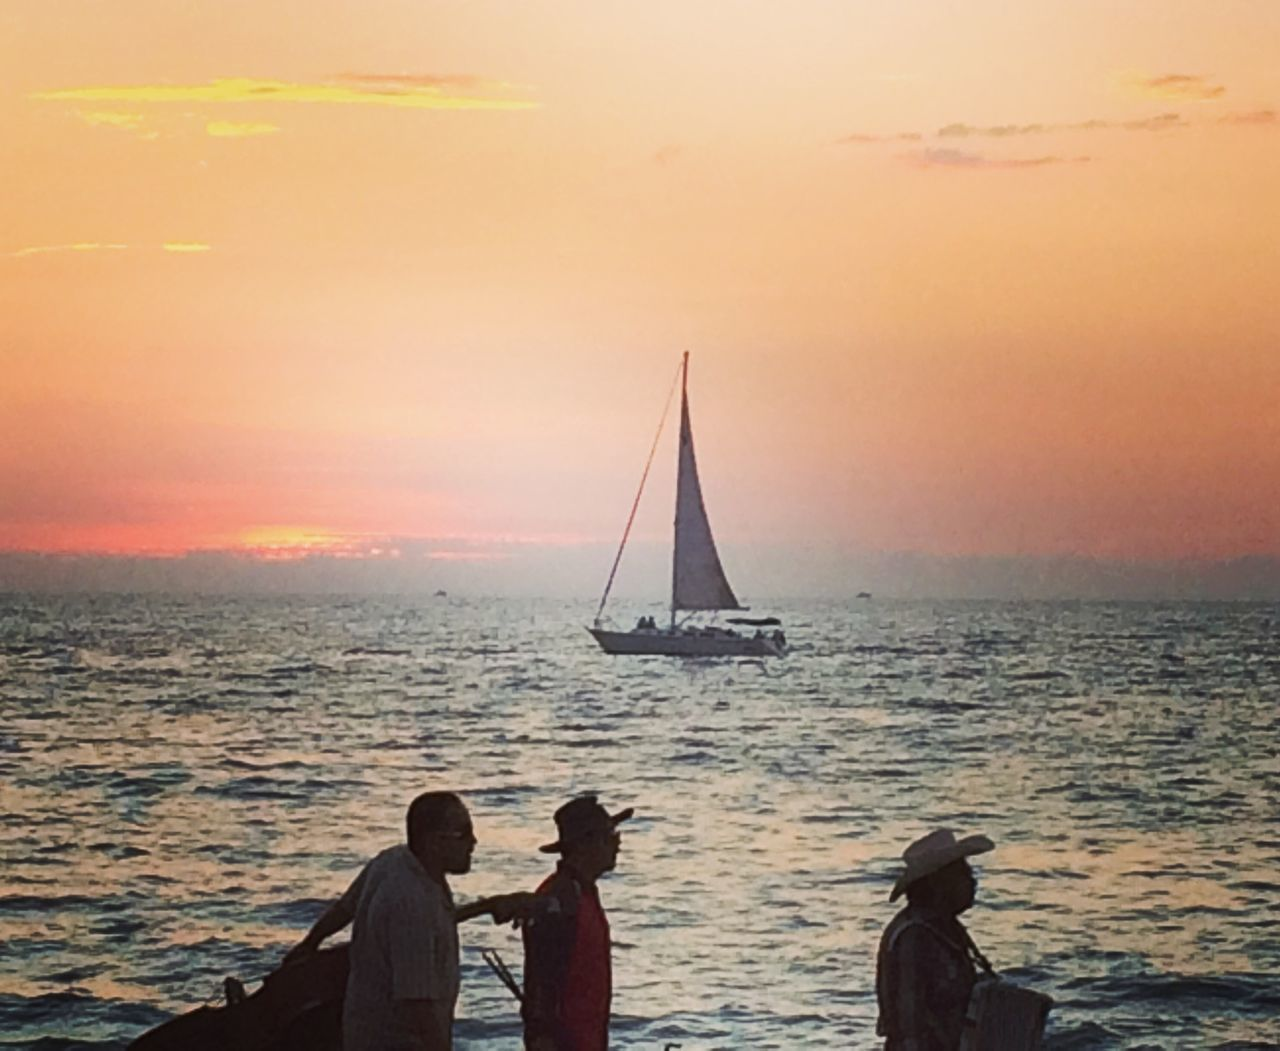 Three Amigos Sunset Outdoors Ship Ship Sailing Beyond The Horizon Ships At Sea Ship Sails Ship In The Sea Water Beach Sea Nofilter Real People Beauty In Nature Nature Togetherness Puertovallarta Mexico Threeamigos ThreeFriends TresAmigos Musicians Musicians Rock Musician Life Music Brings Us Together MusicIsLife